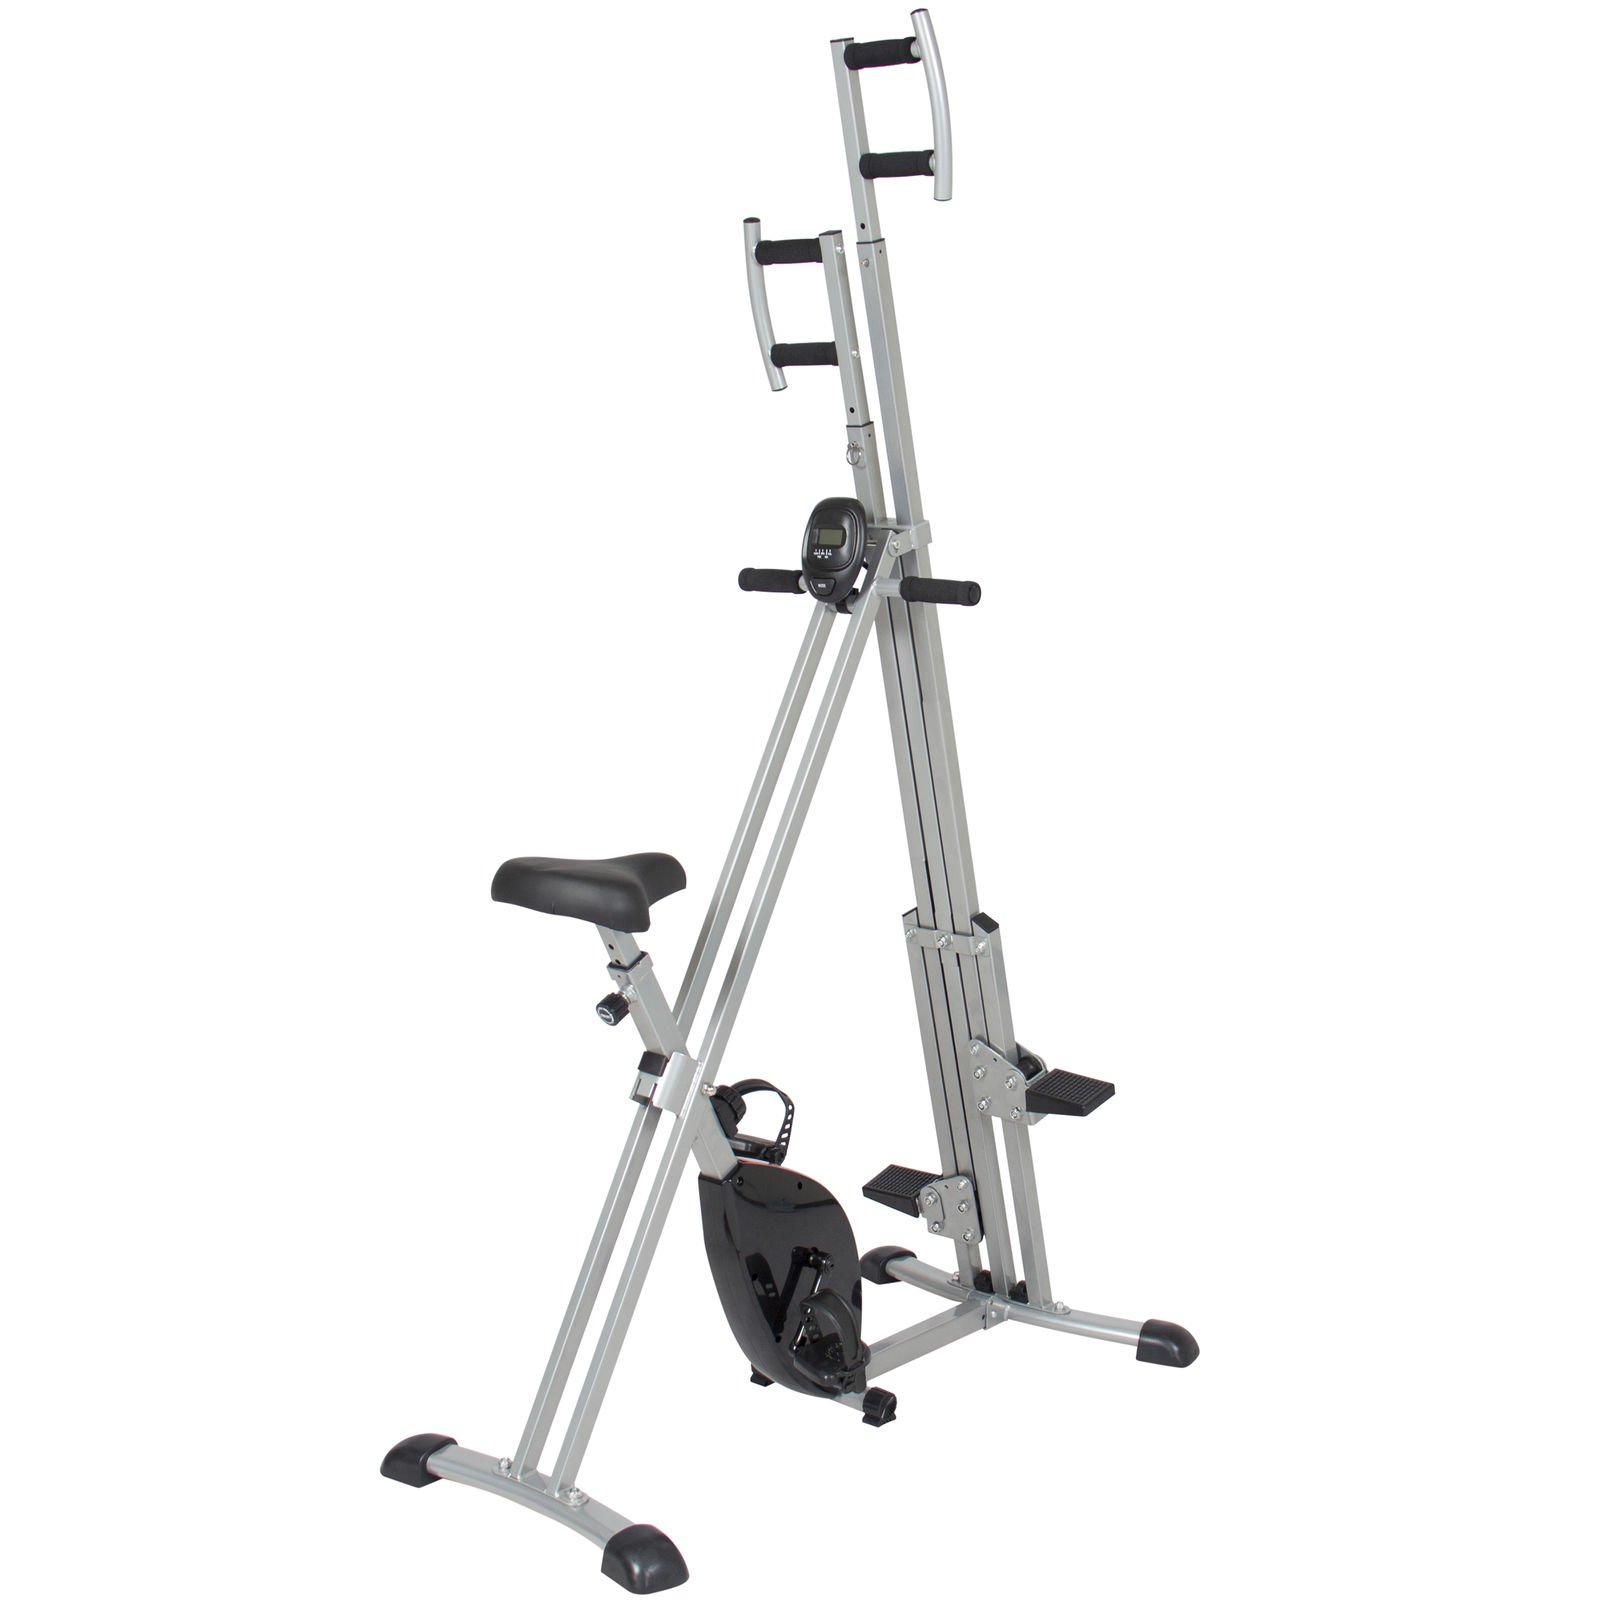 Total Body 2-IN-1 Vertical Climber Magnetic Exercise Bike Fitness Machine by BUY JOY (Image #2)